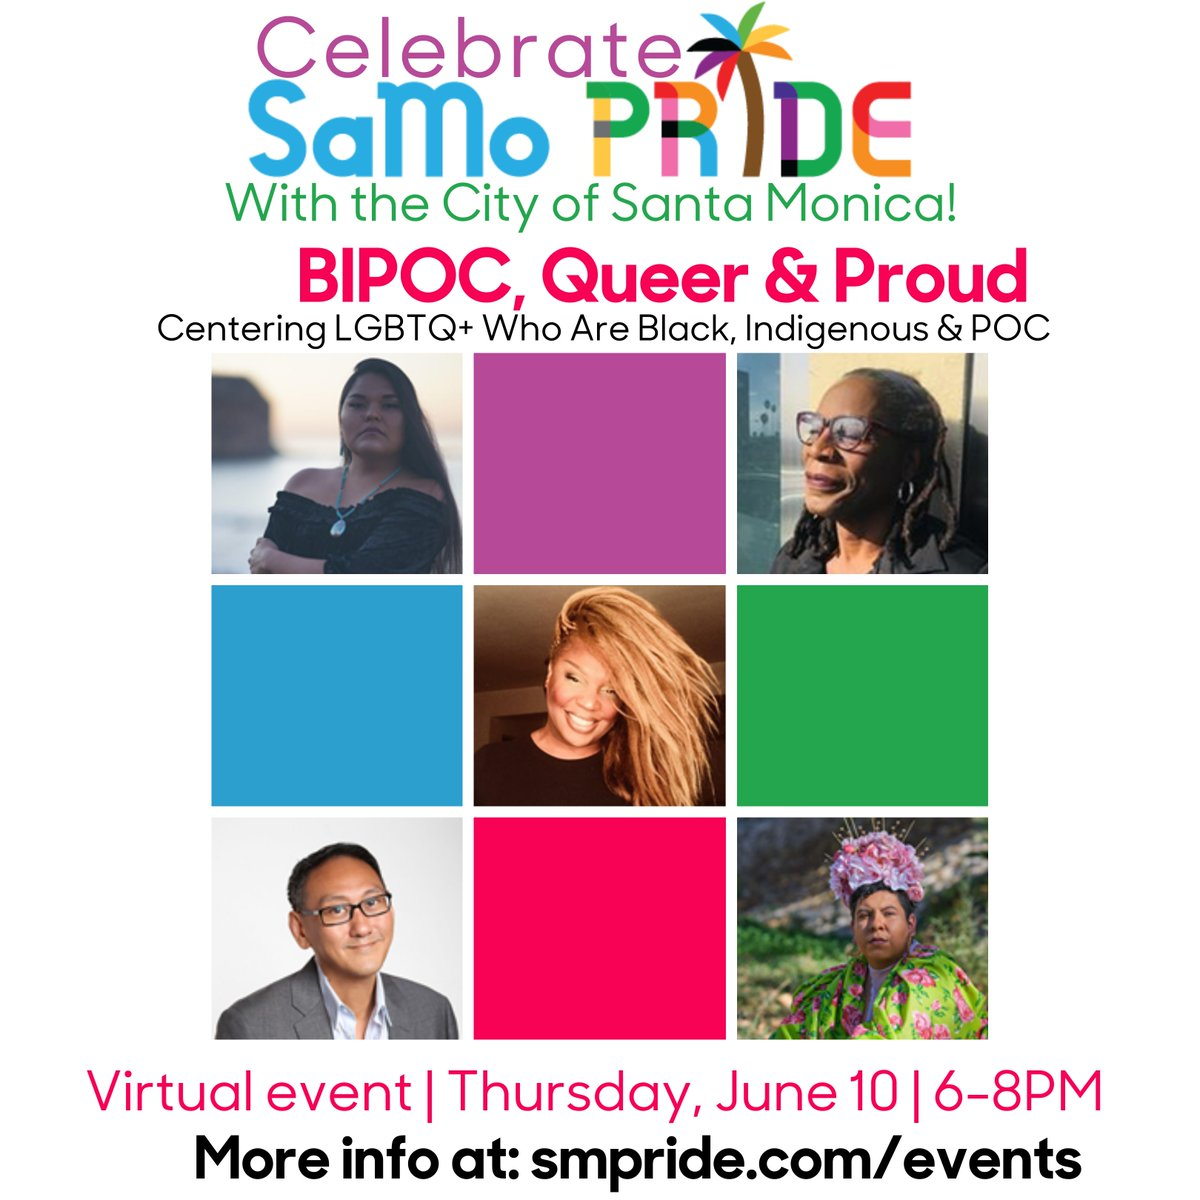 """Happening TOMORROW: """"BIPOC, Queer & Proud!"""" In this exciting panel, members of the LGBTQ+  community who Are Black, Indigenous & People of Color (BIPOC) will discuss both the challenges and joys of their intersecting identities.   Register & Learn: https://t.co/CRLUyXncUY https://t.co/wFsqmRoWu1"""